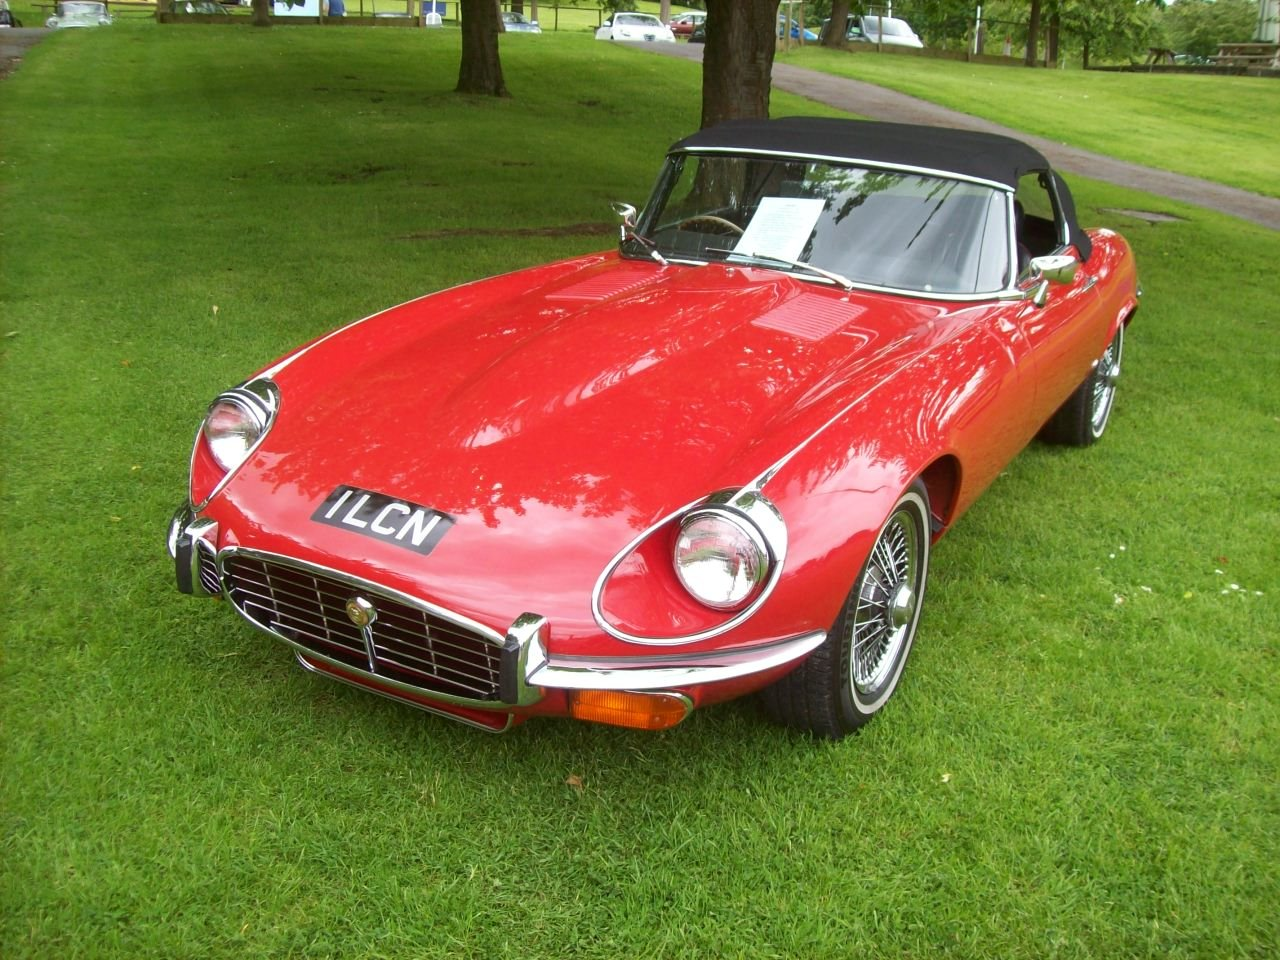 1972 JAGUAR V12 E TYPE Convertible For Sale (picture 1 of 5)